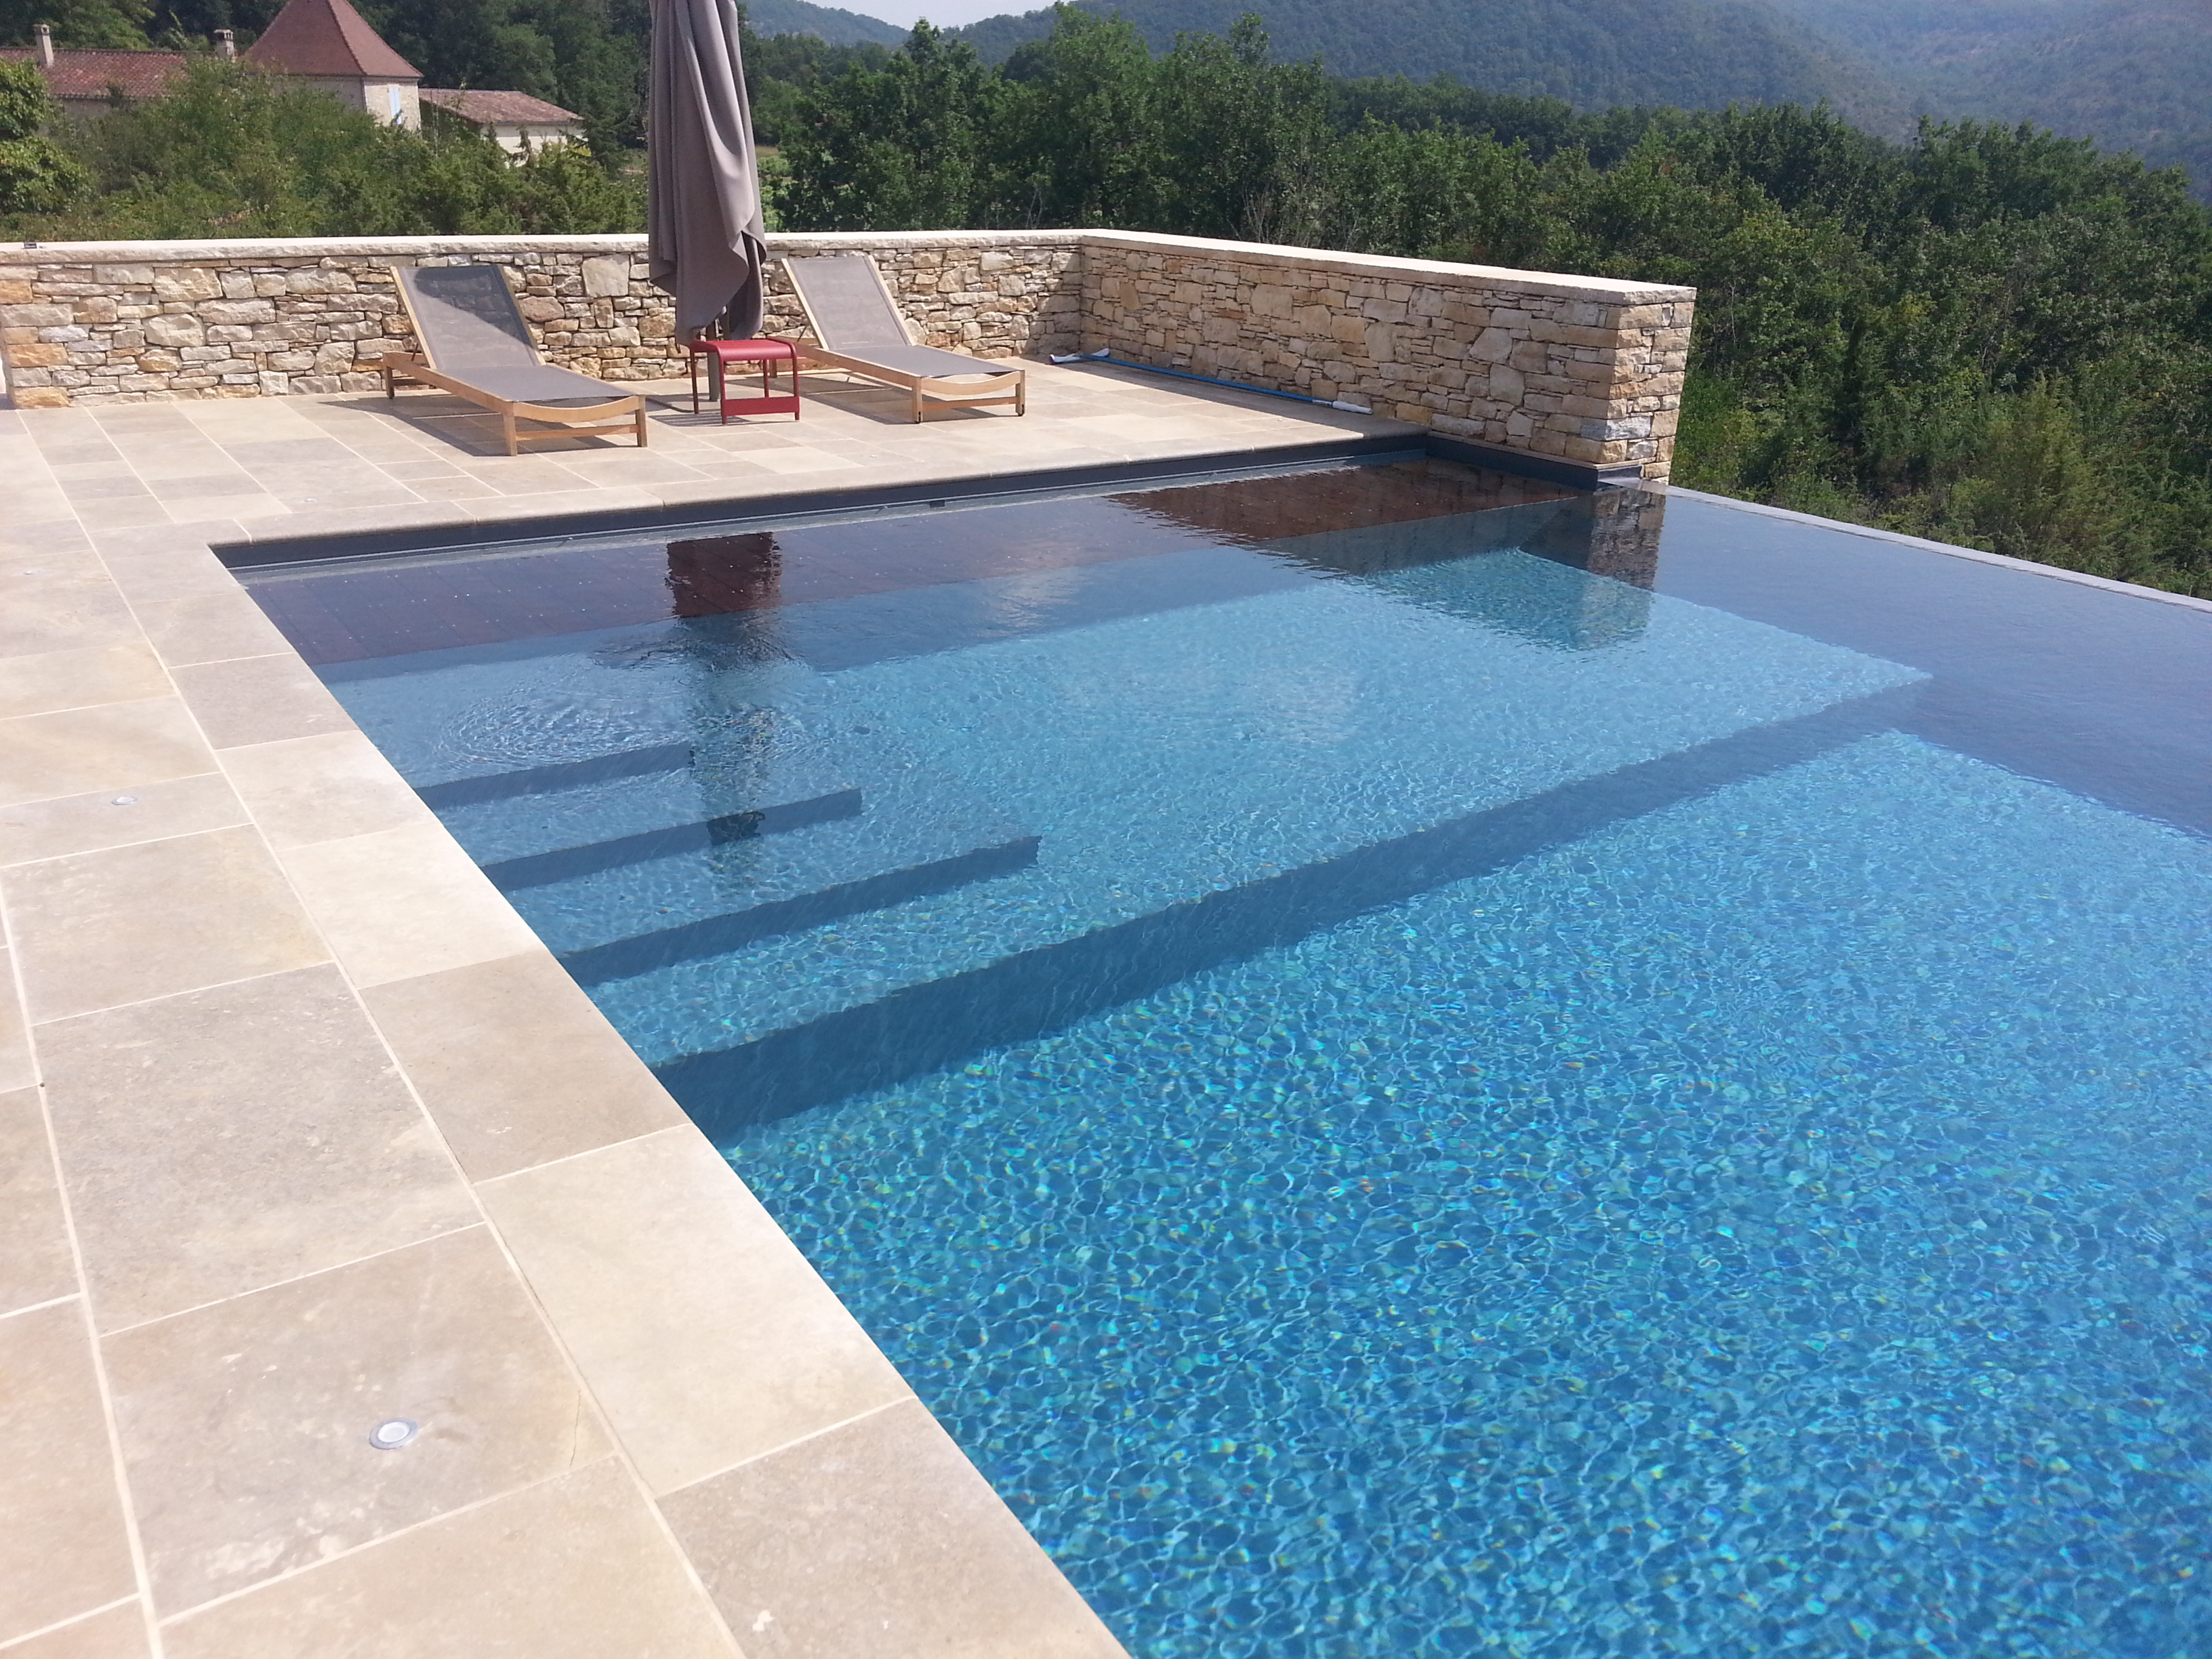 Constructeur de piscine d bordement en haute garonne for Piscine everblue